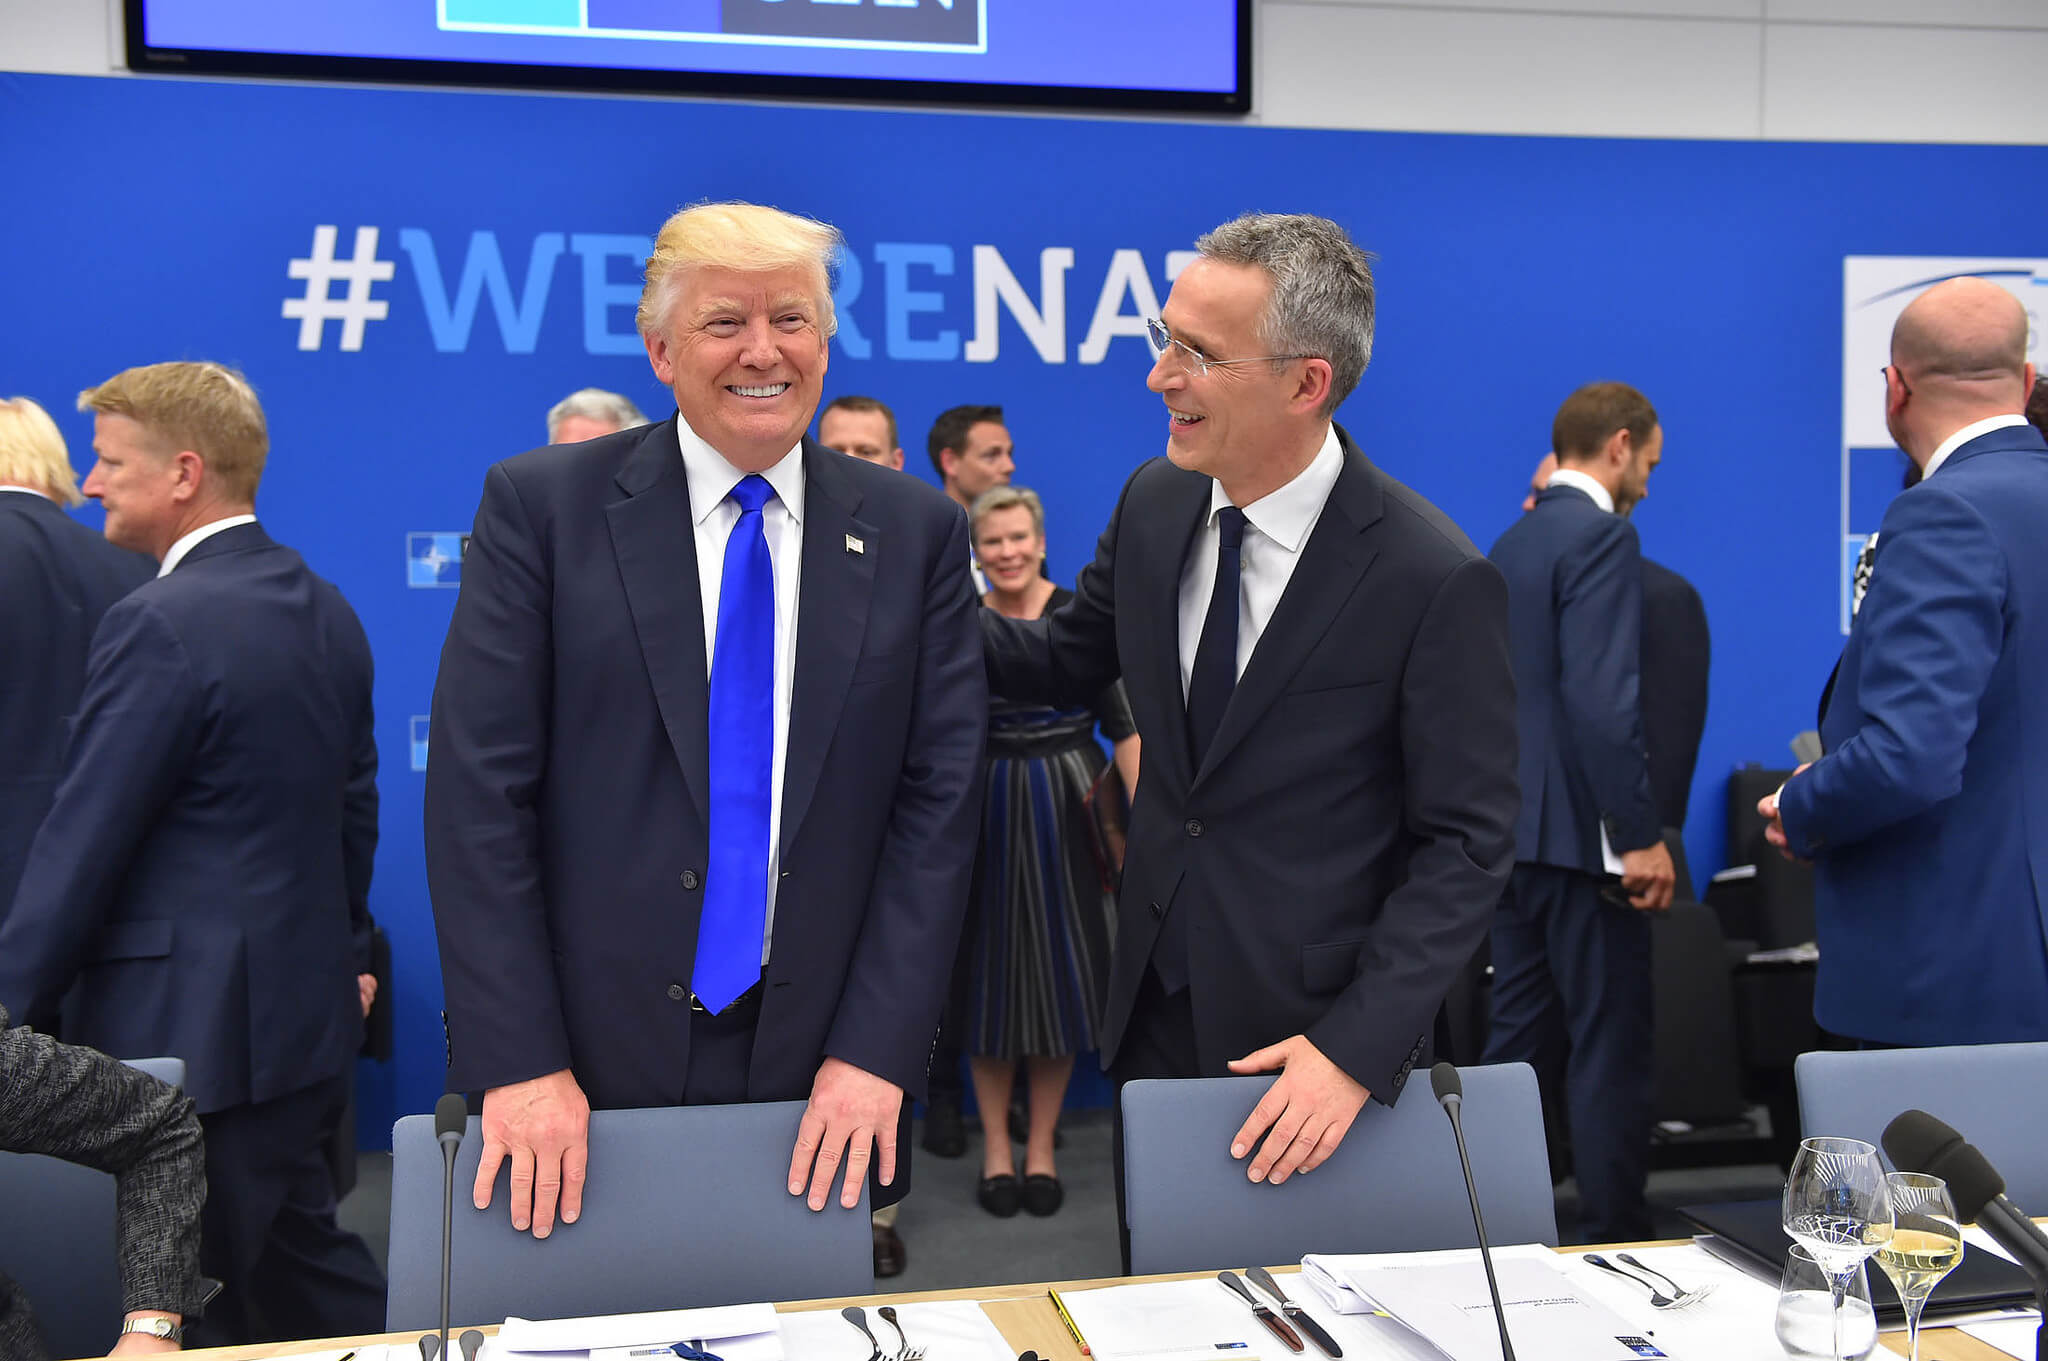 Meeting of NATO Heads of State and Government in Brussels: Donald Trump and Jens Stoltenberg. Source: NATO / Flickr.